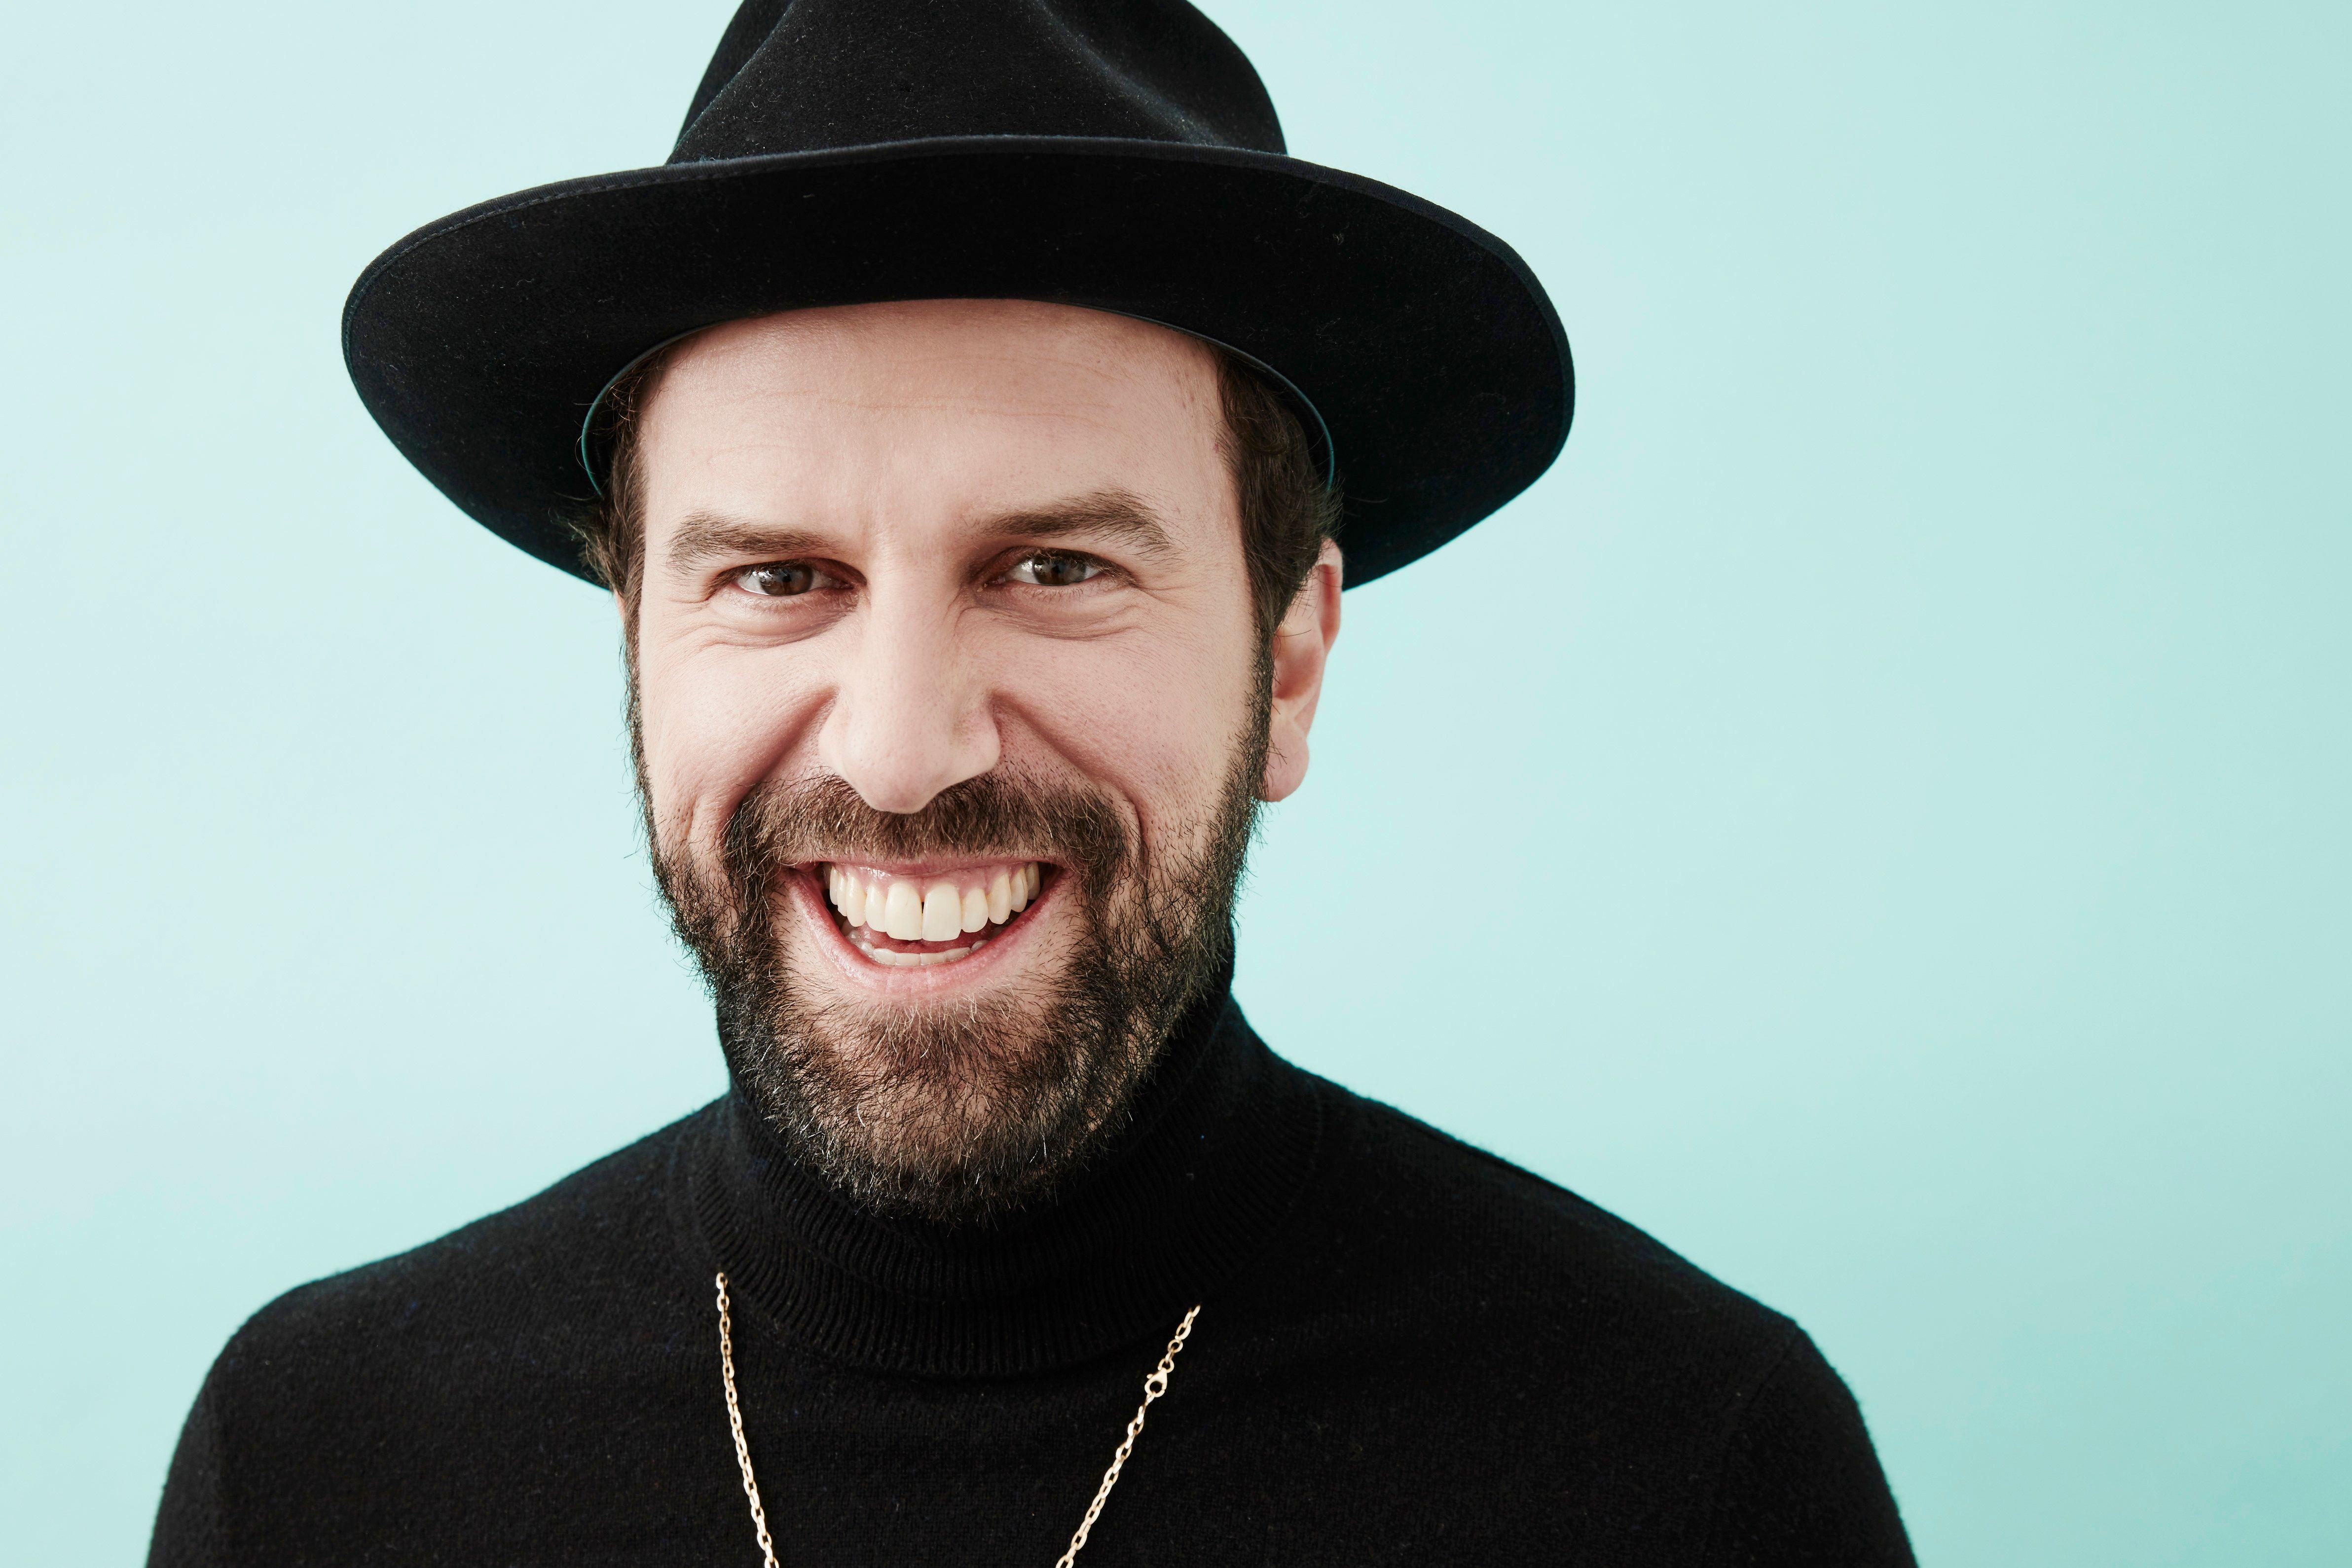 Brett Gelman of 'Dinner With Family' poses for a portrait at the 2016 Sundance Film Festival Getty Images Portrait Studio Hosted By Eddie Bauer At Village At The Lift on January 23, 2016 in Park City, Utah